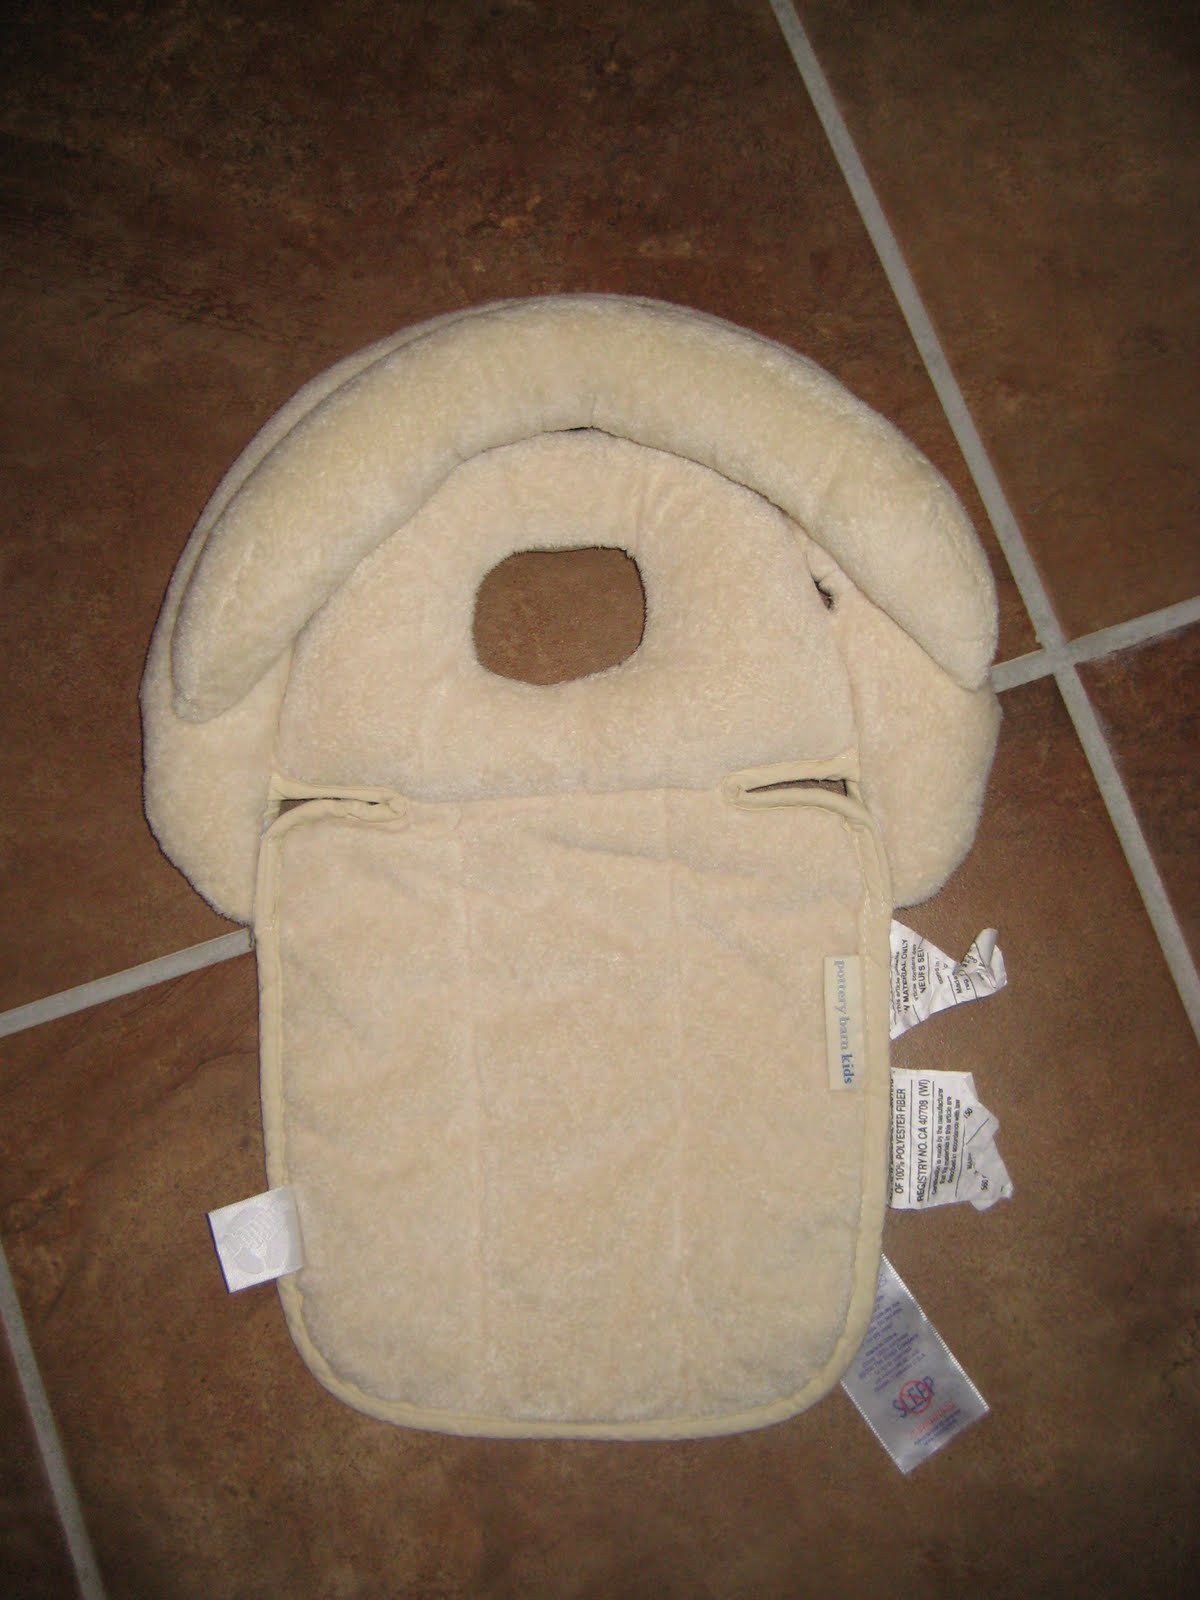 Baby Boppy Chair Recall John Lewis Loose Covers Year Of Gear